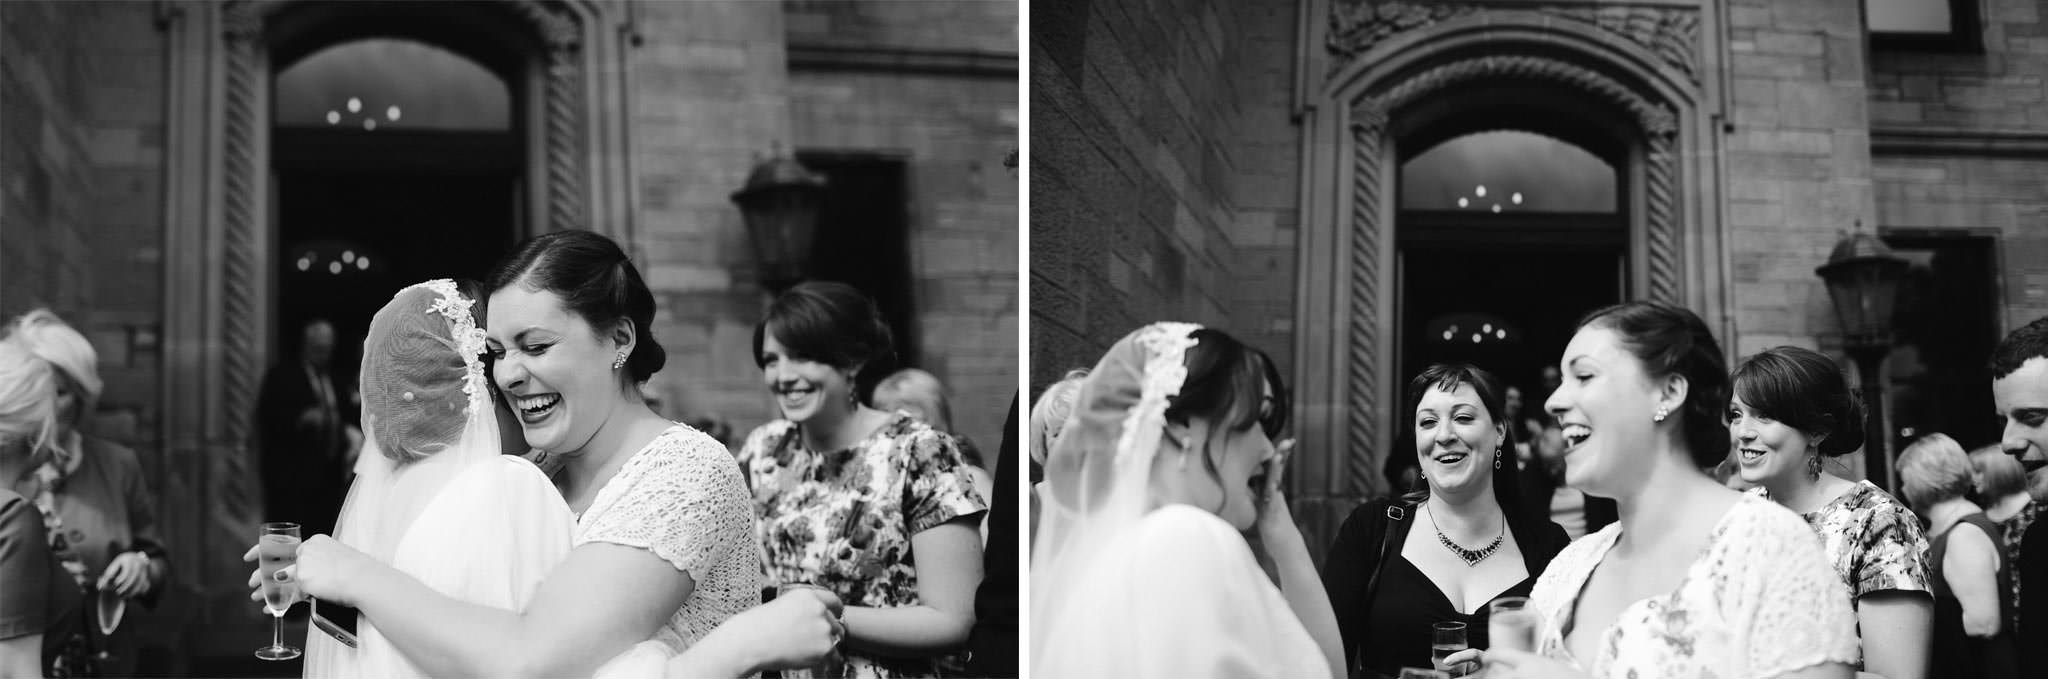 scottish-wedding-photographer-067